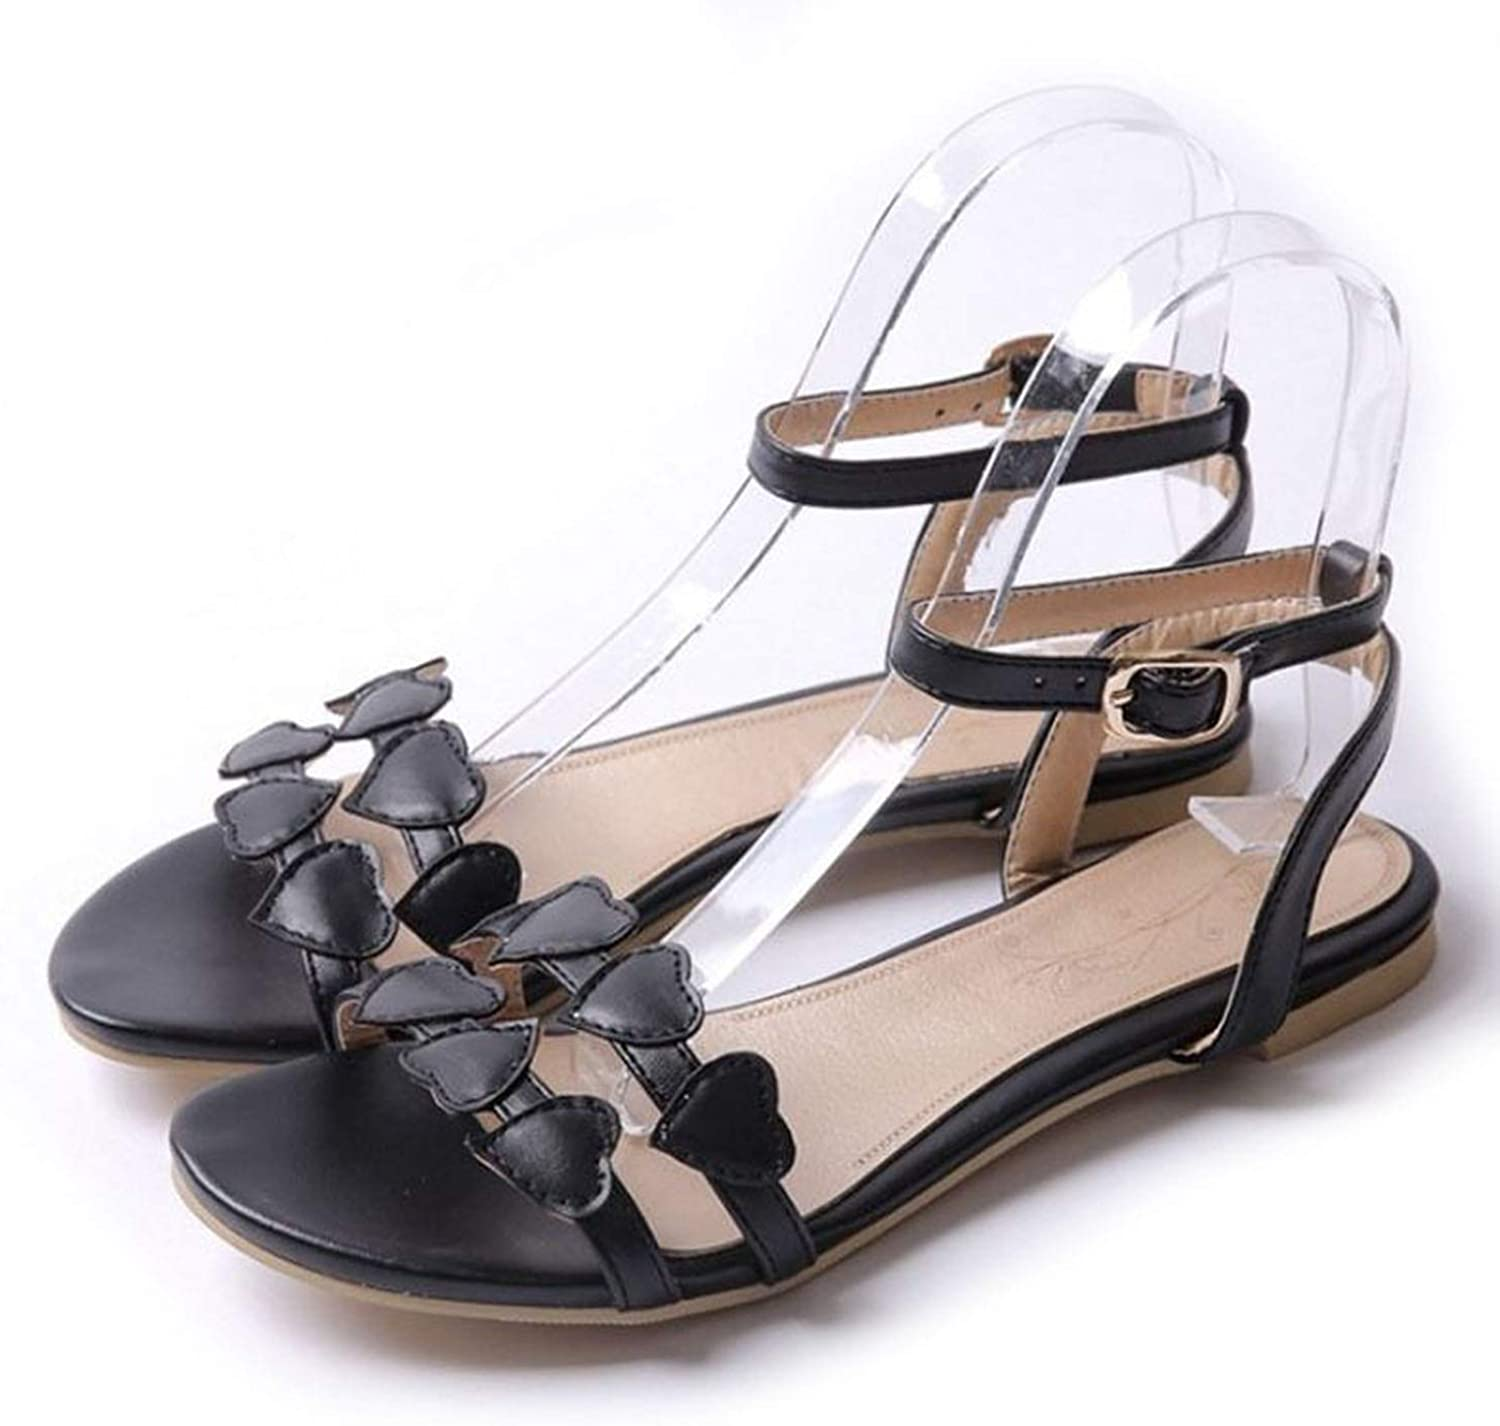 Women Sandals Solid color Ankle Strap Soft Flats shoes Comfort Leisure Outdoor Simple Women shoes